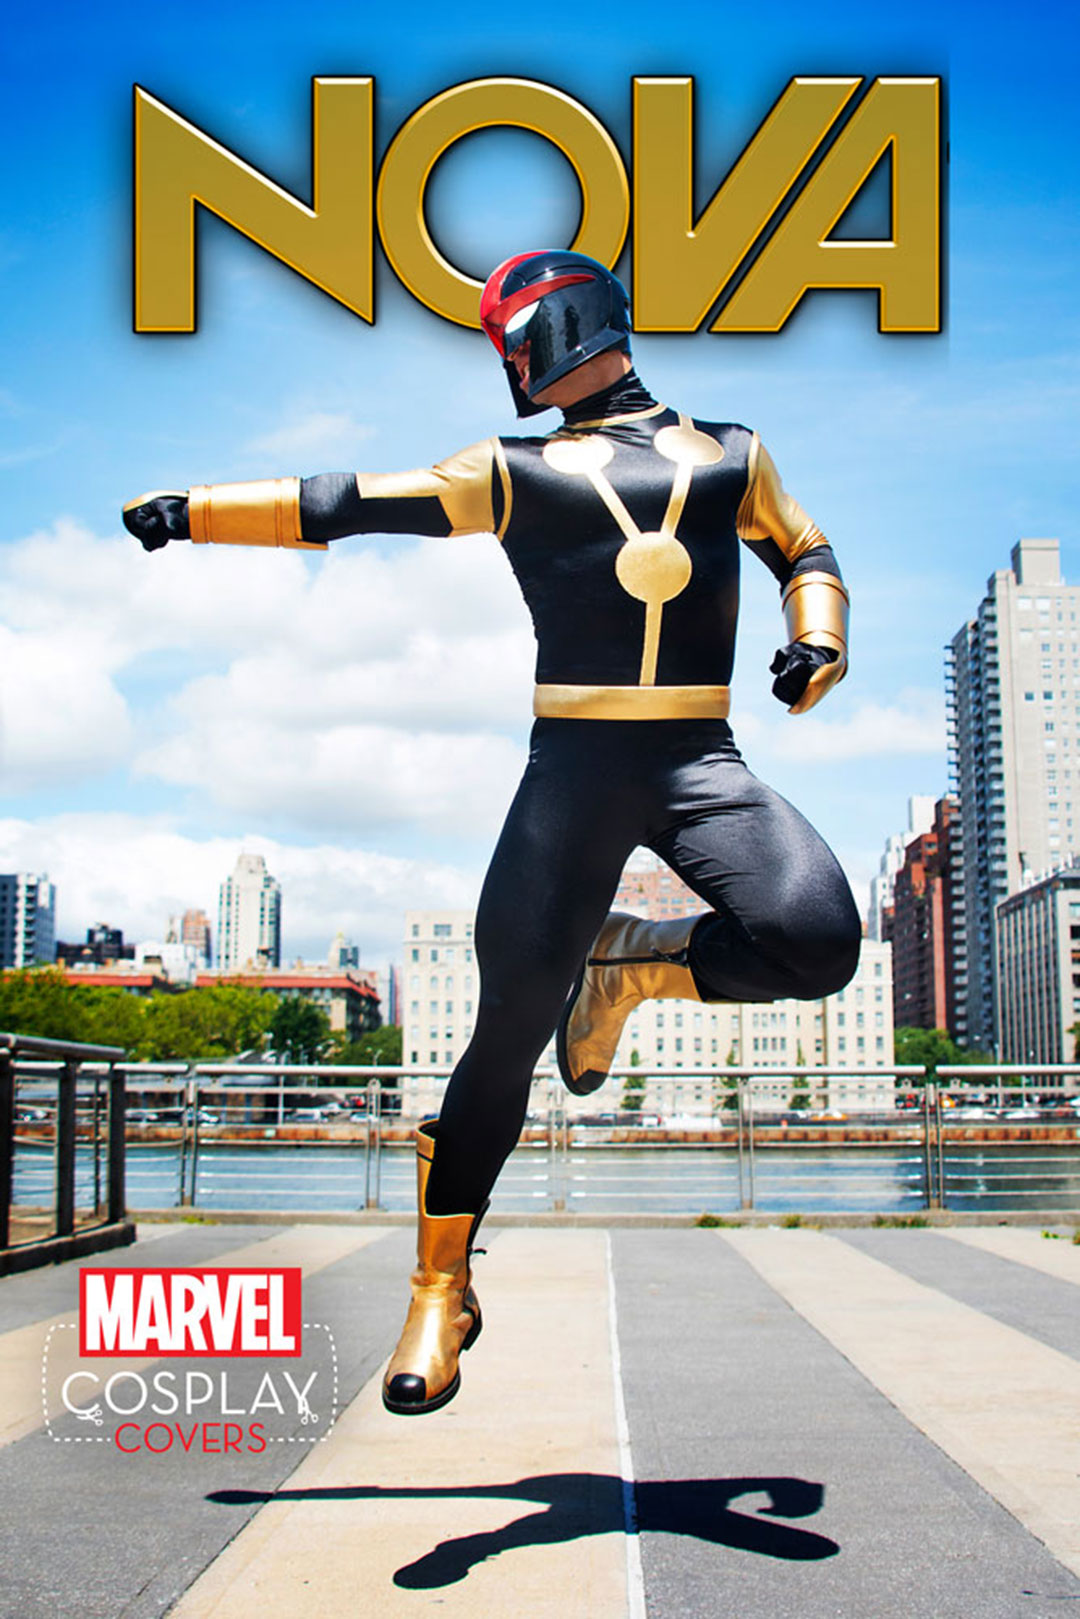 Couverture-Marvel-cosplay (4)